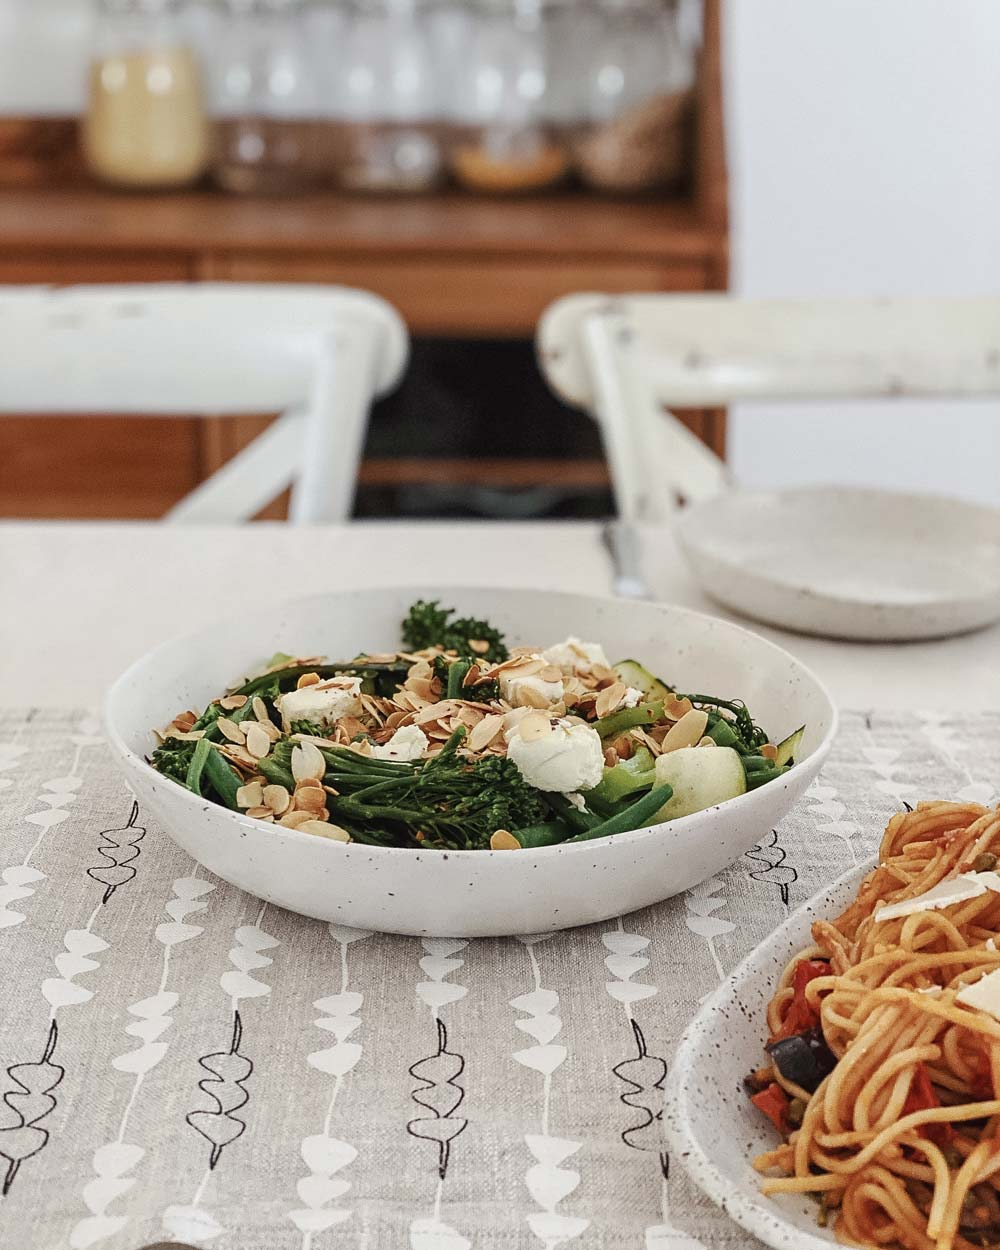 Brocolli and almond salad served in a winterwares ceramic bowl